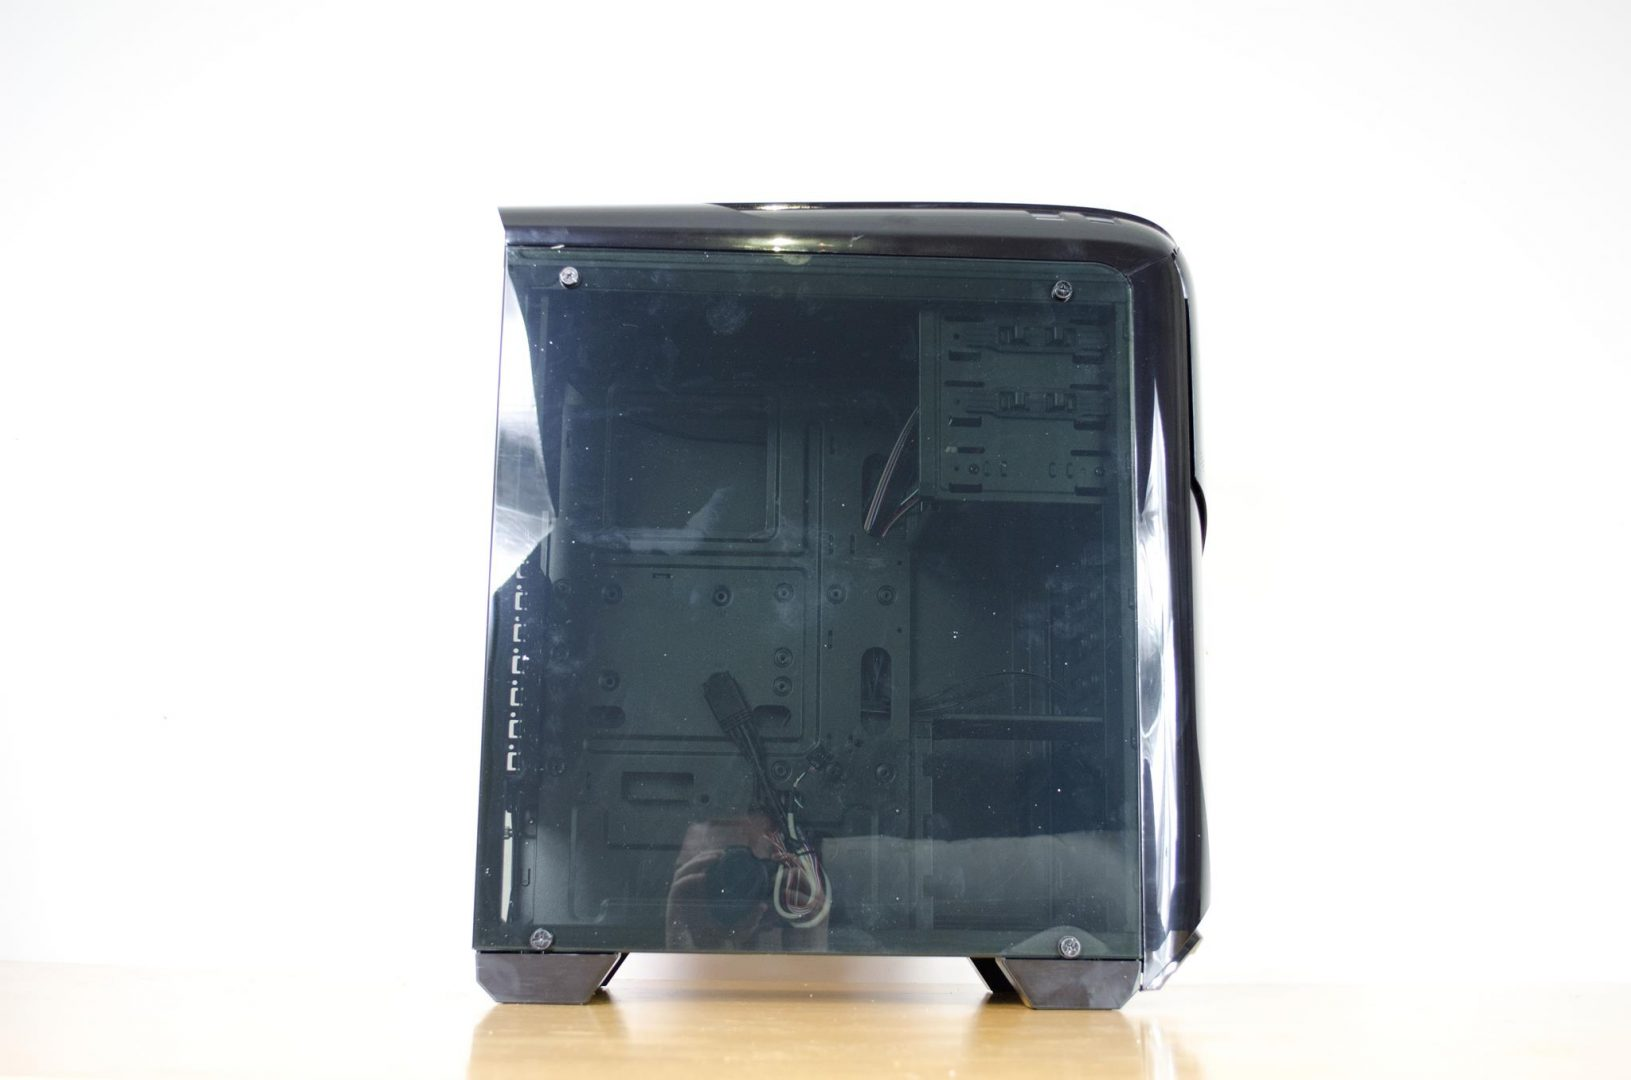 kolink-aviator-v-pc-case-review_2